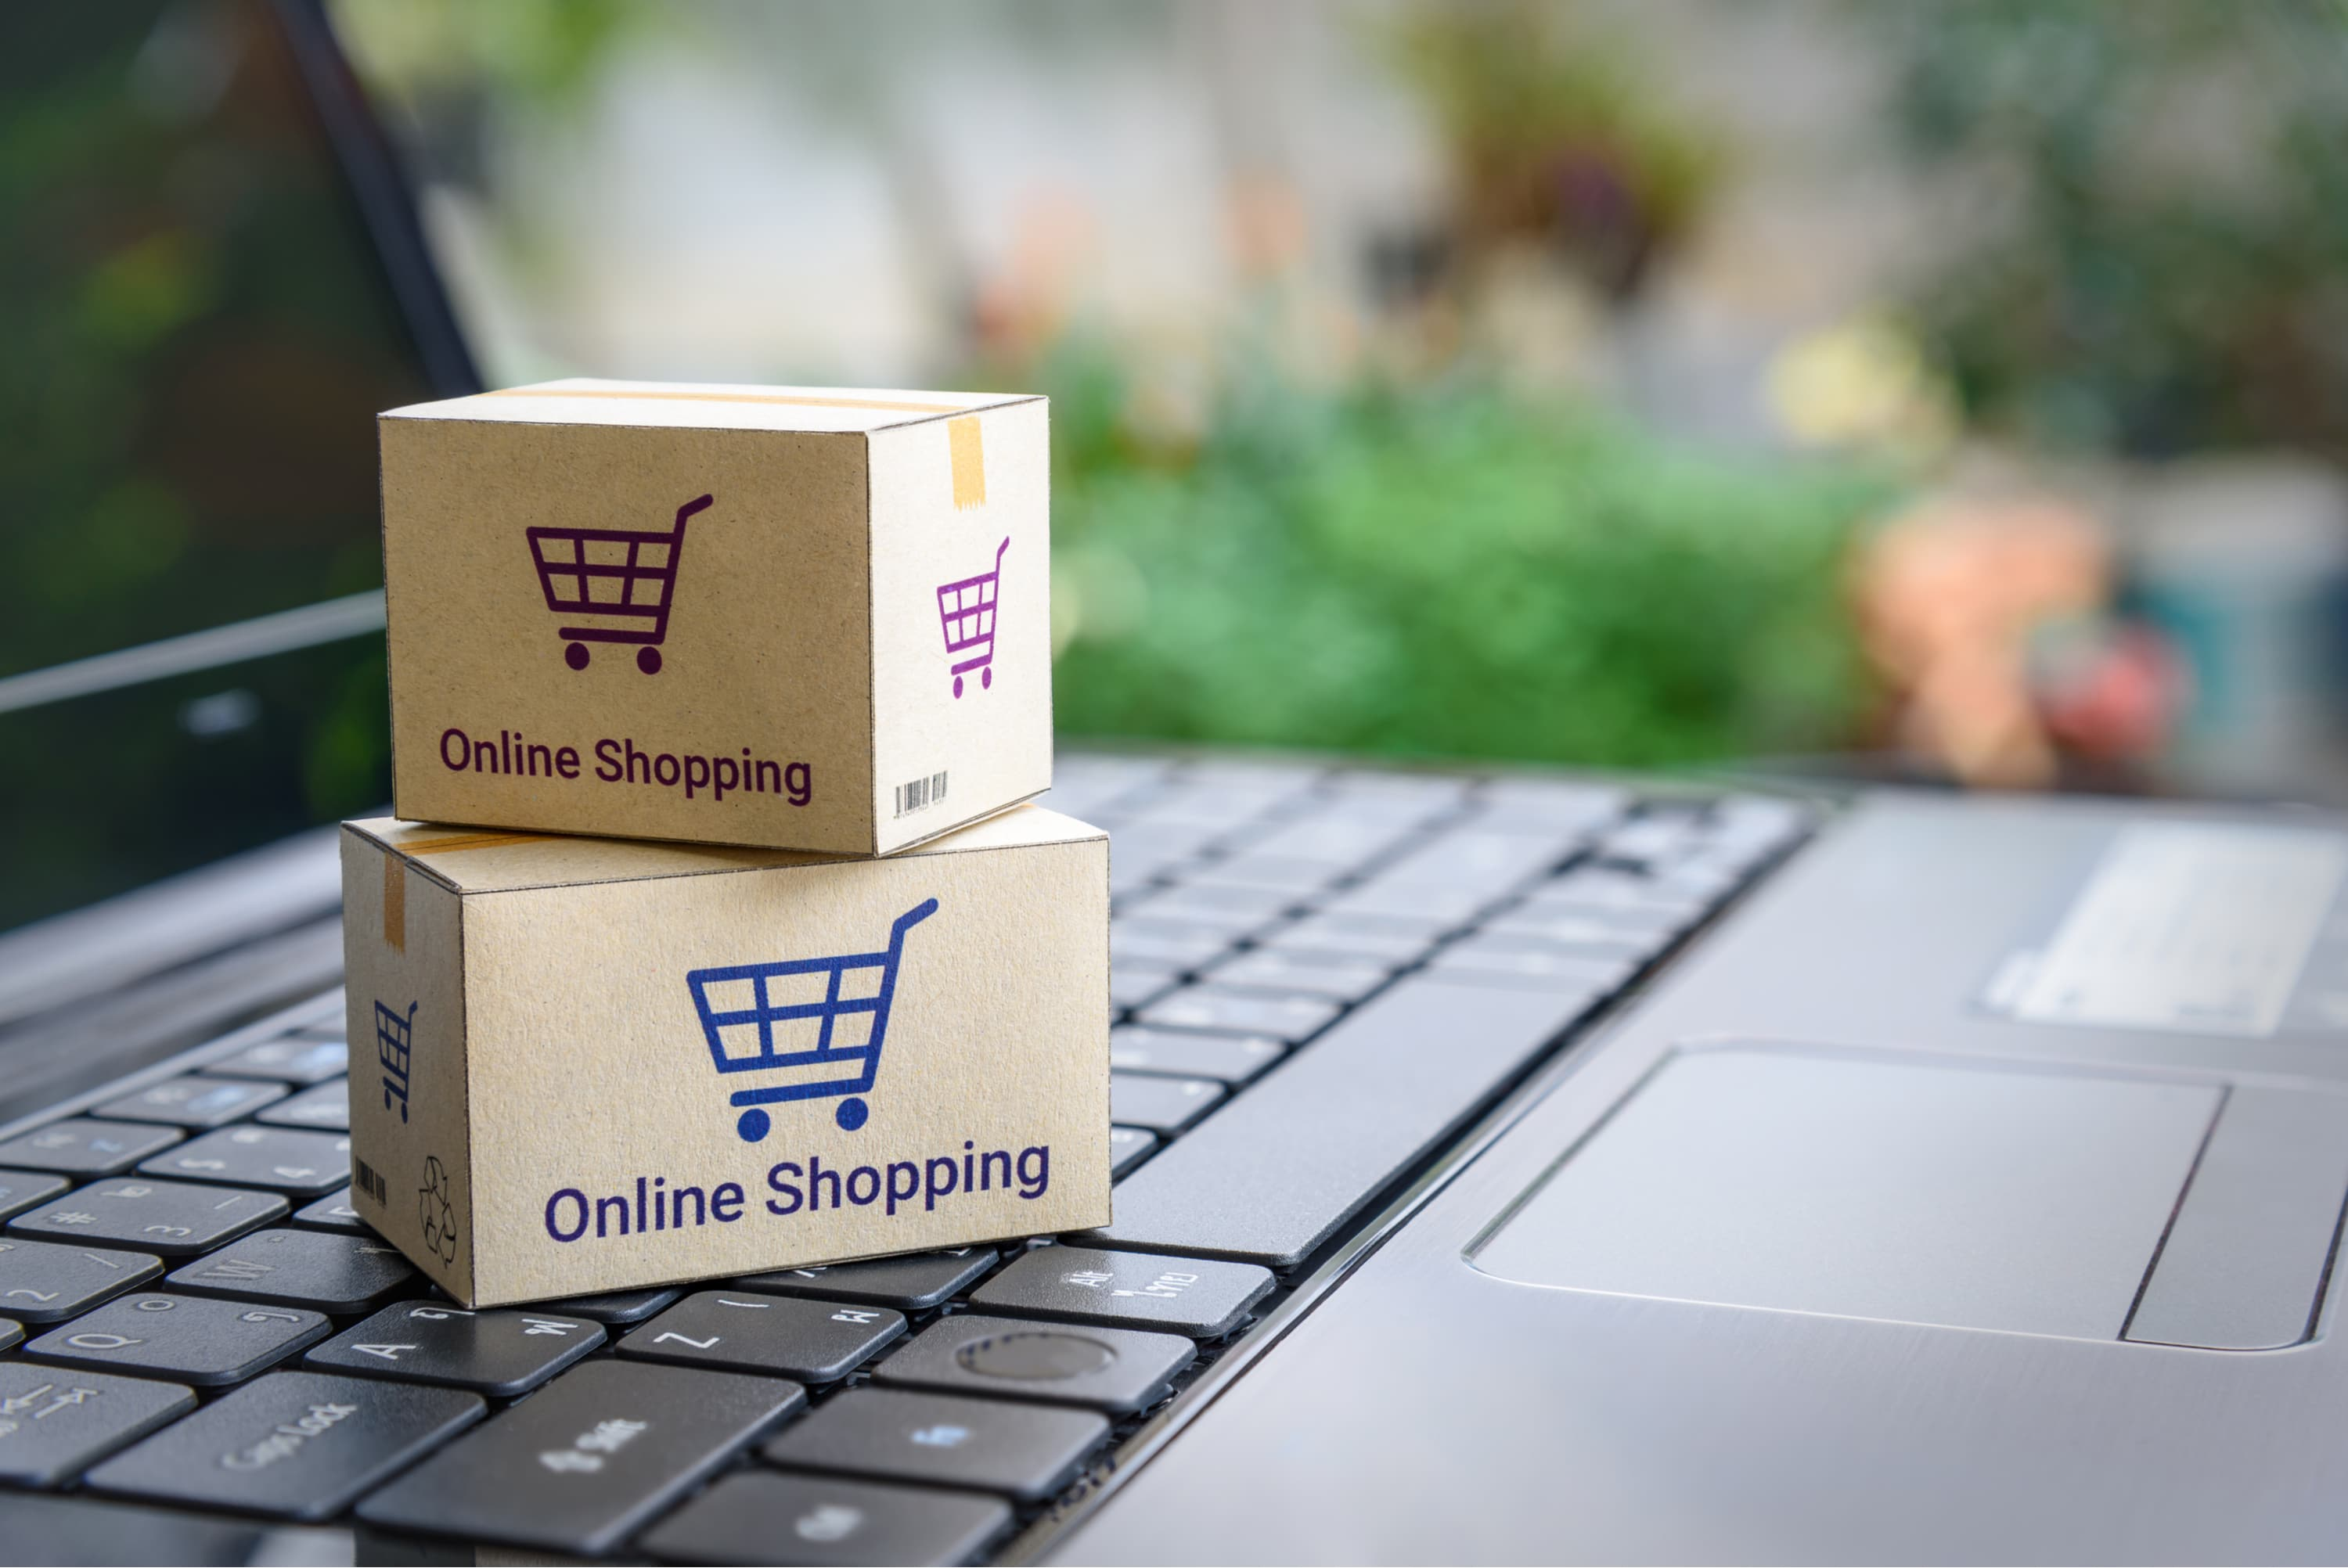 A laptop and items bough while shopping online